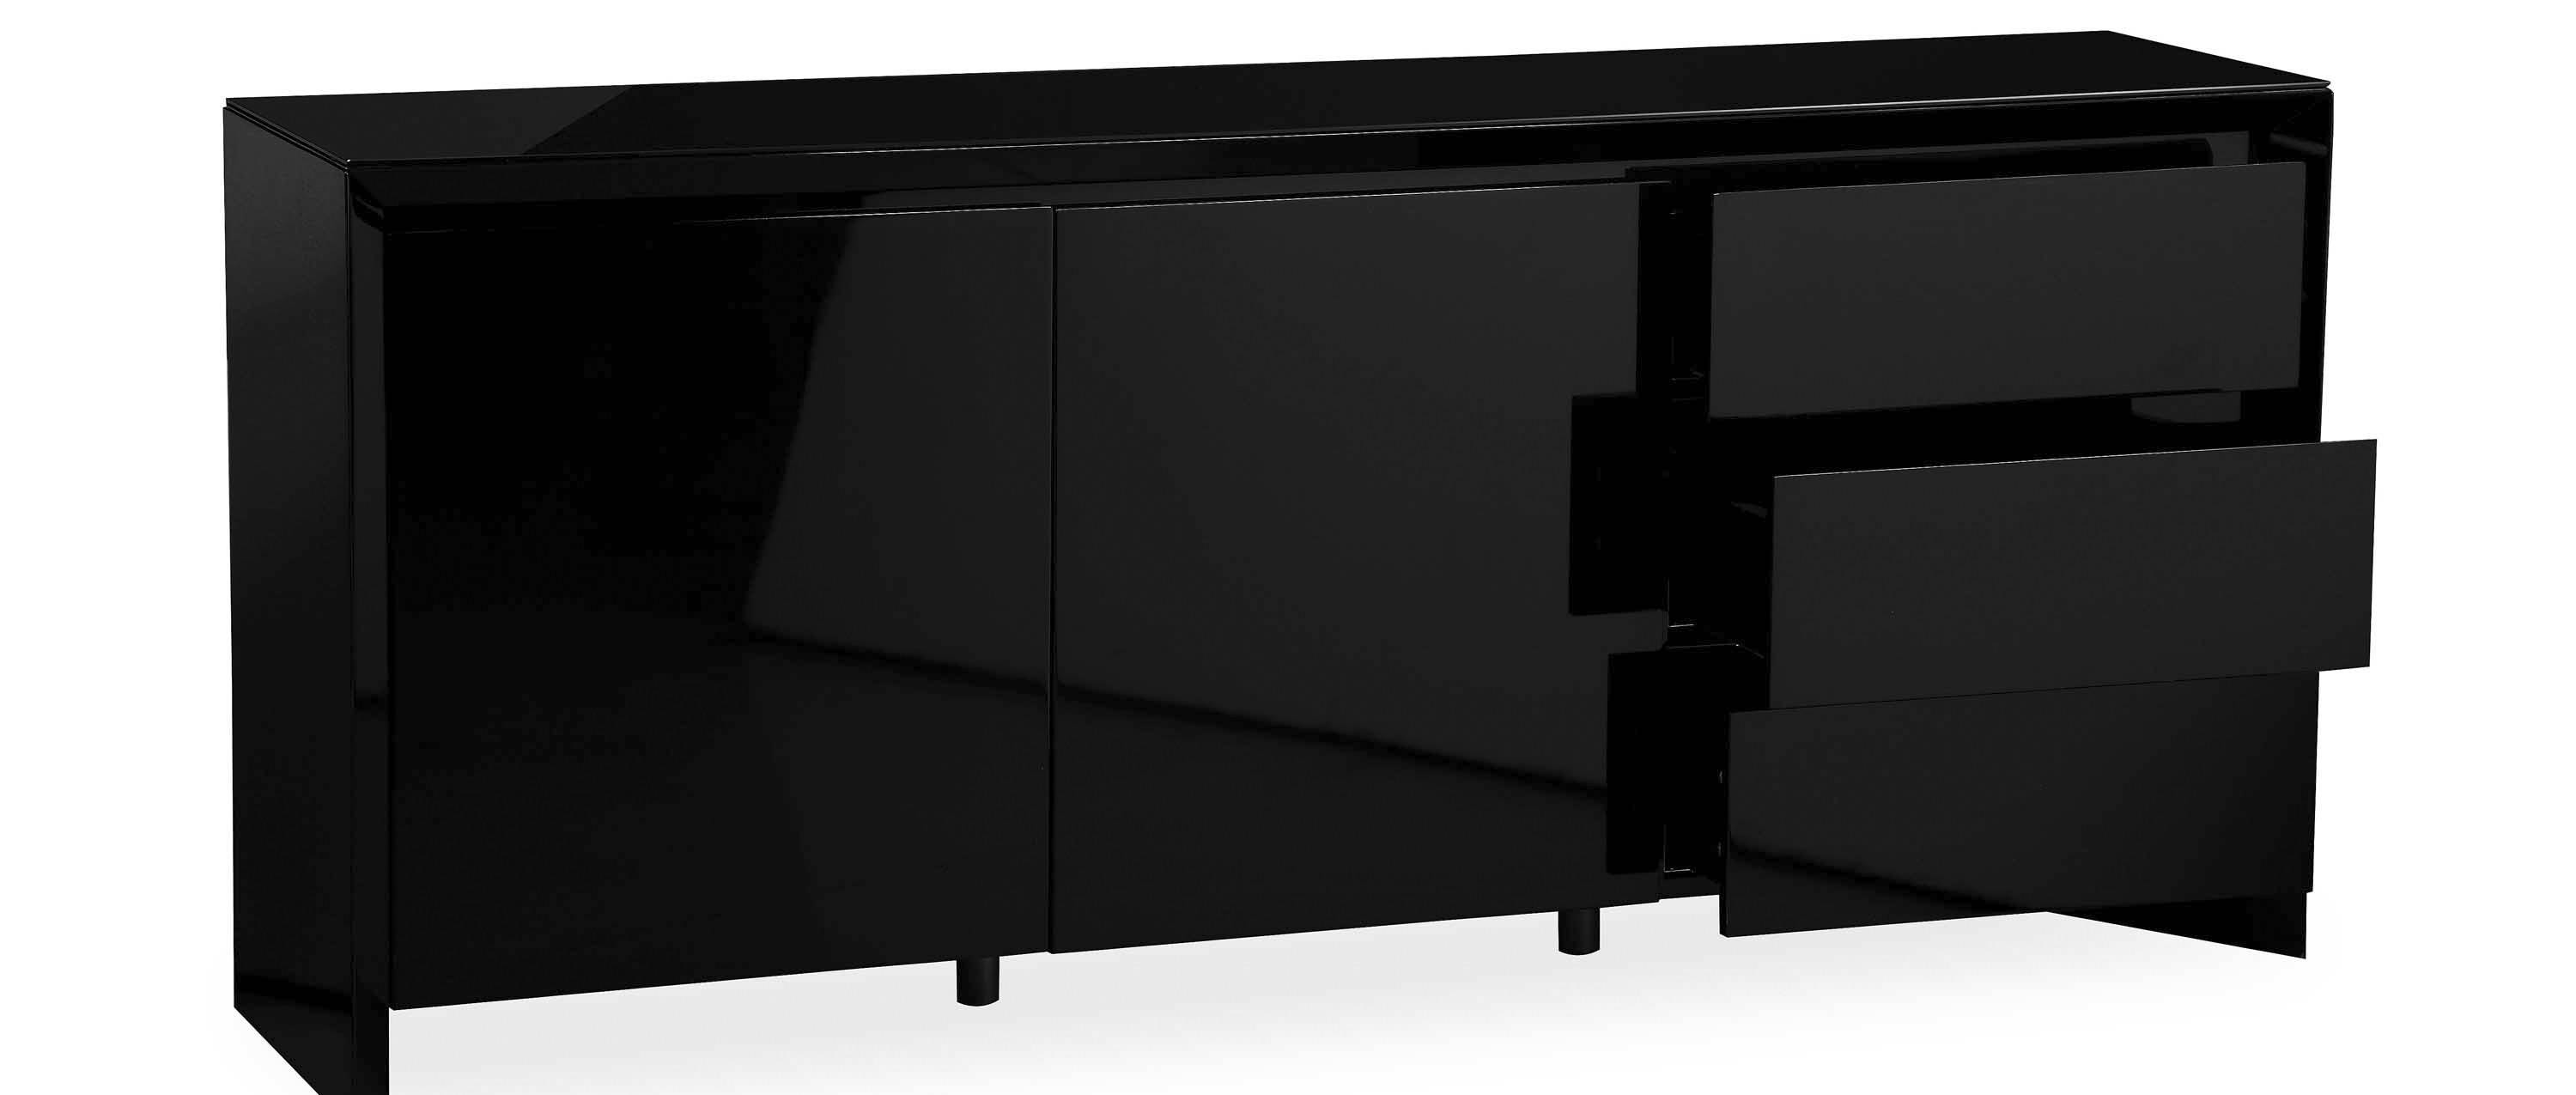 Soho - Extra Large Sideboard - Black High Gloss regarding Black Sideboards (Image 29 of 30)